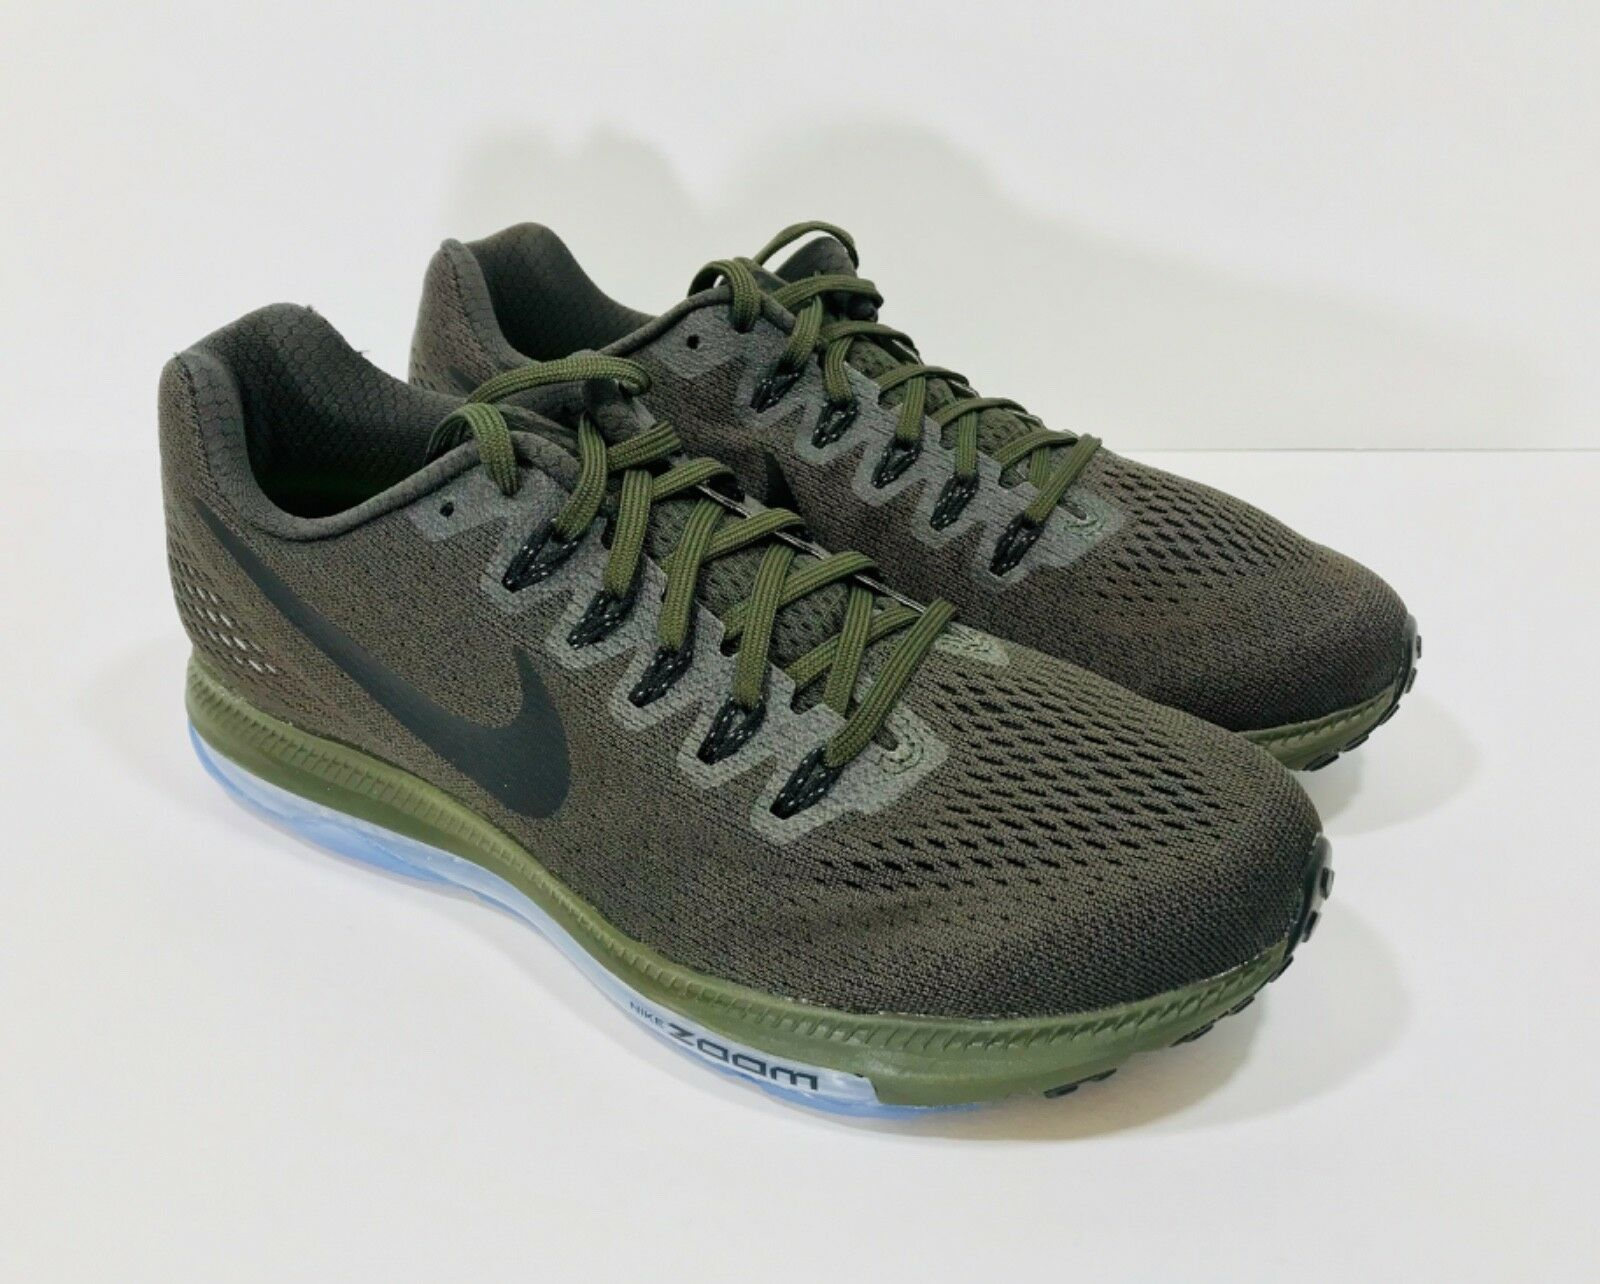 New Nike Zoom All Out Low Men's shoes Sequoia Black-Palm Green 878670-301